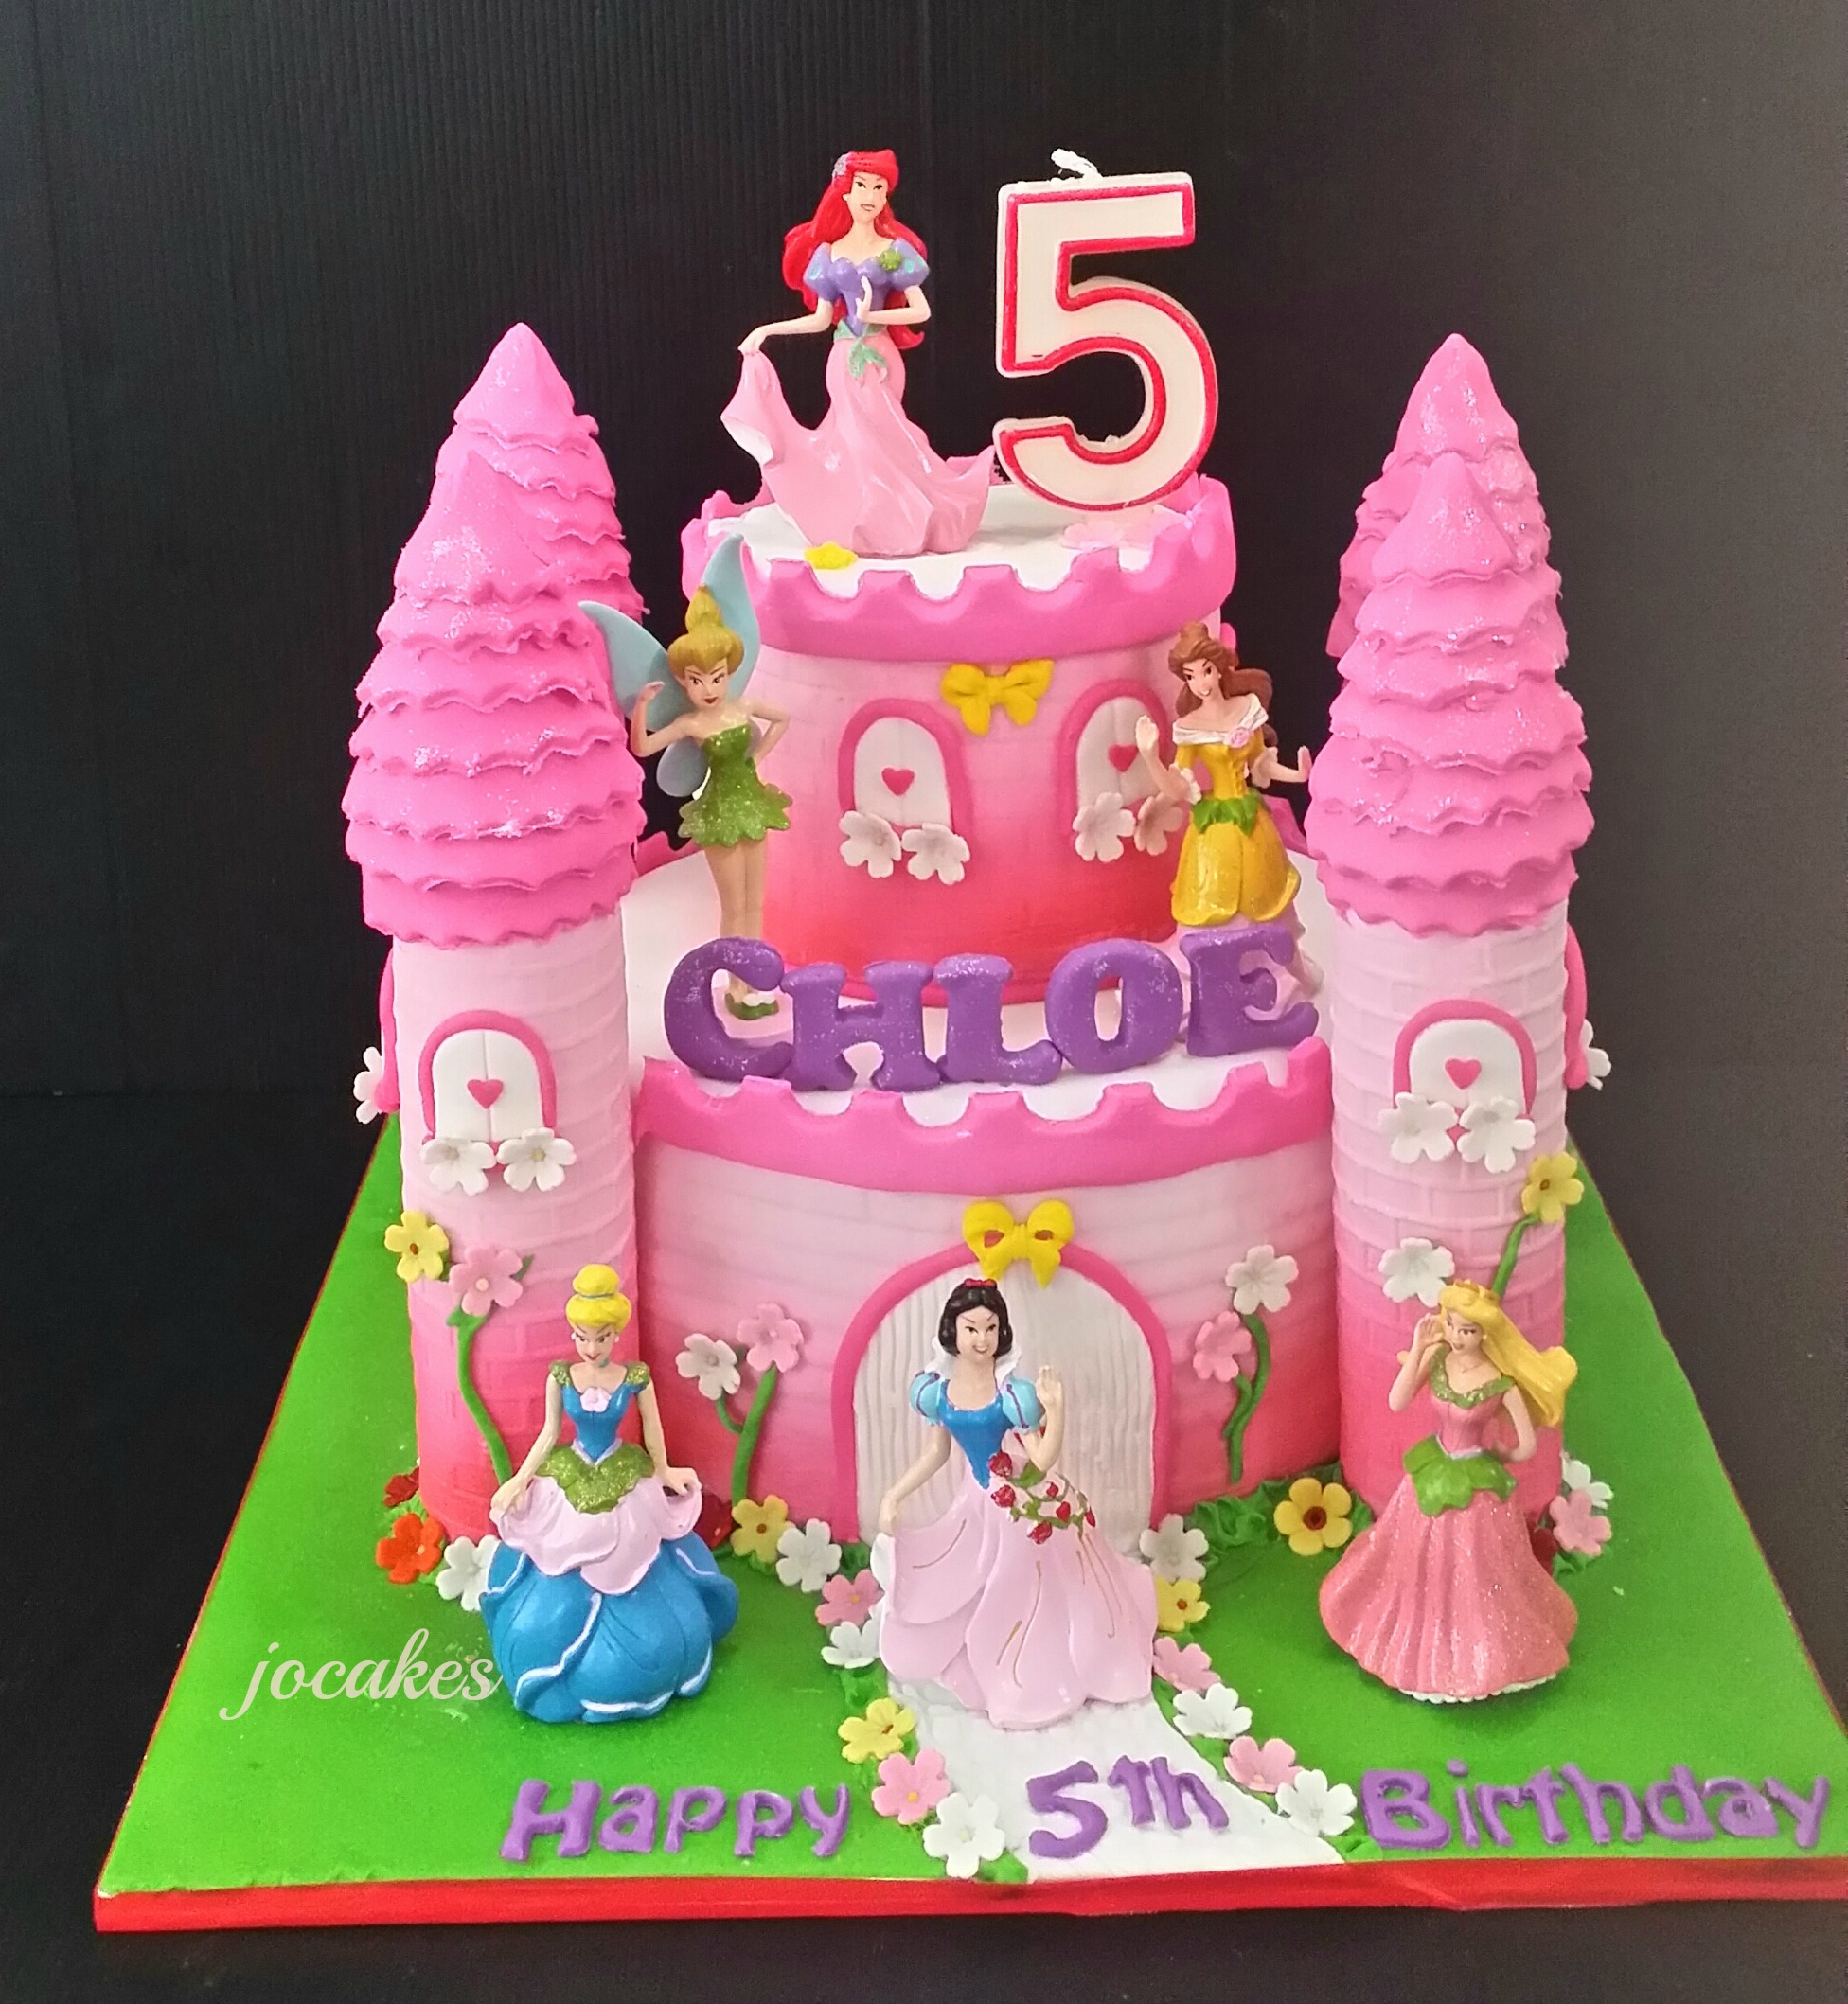 Wondrous 12 Castle Cakes For Girls 5Th Birthday Photo Happy 5Th Birthday Funny Birthday Cards Online Alyptdamsfinfo